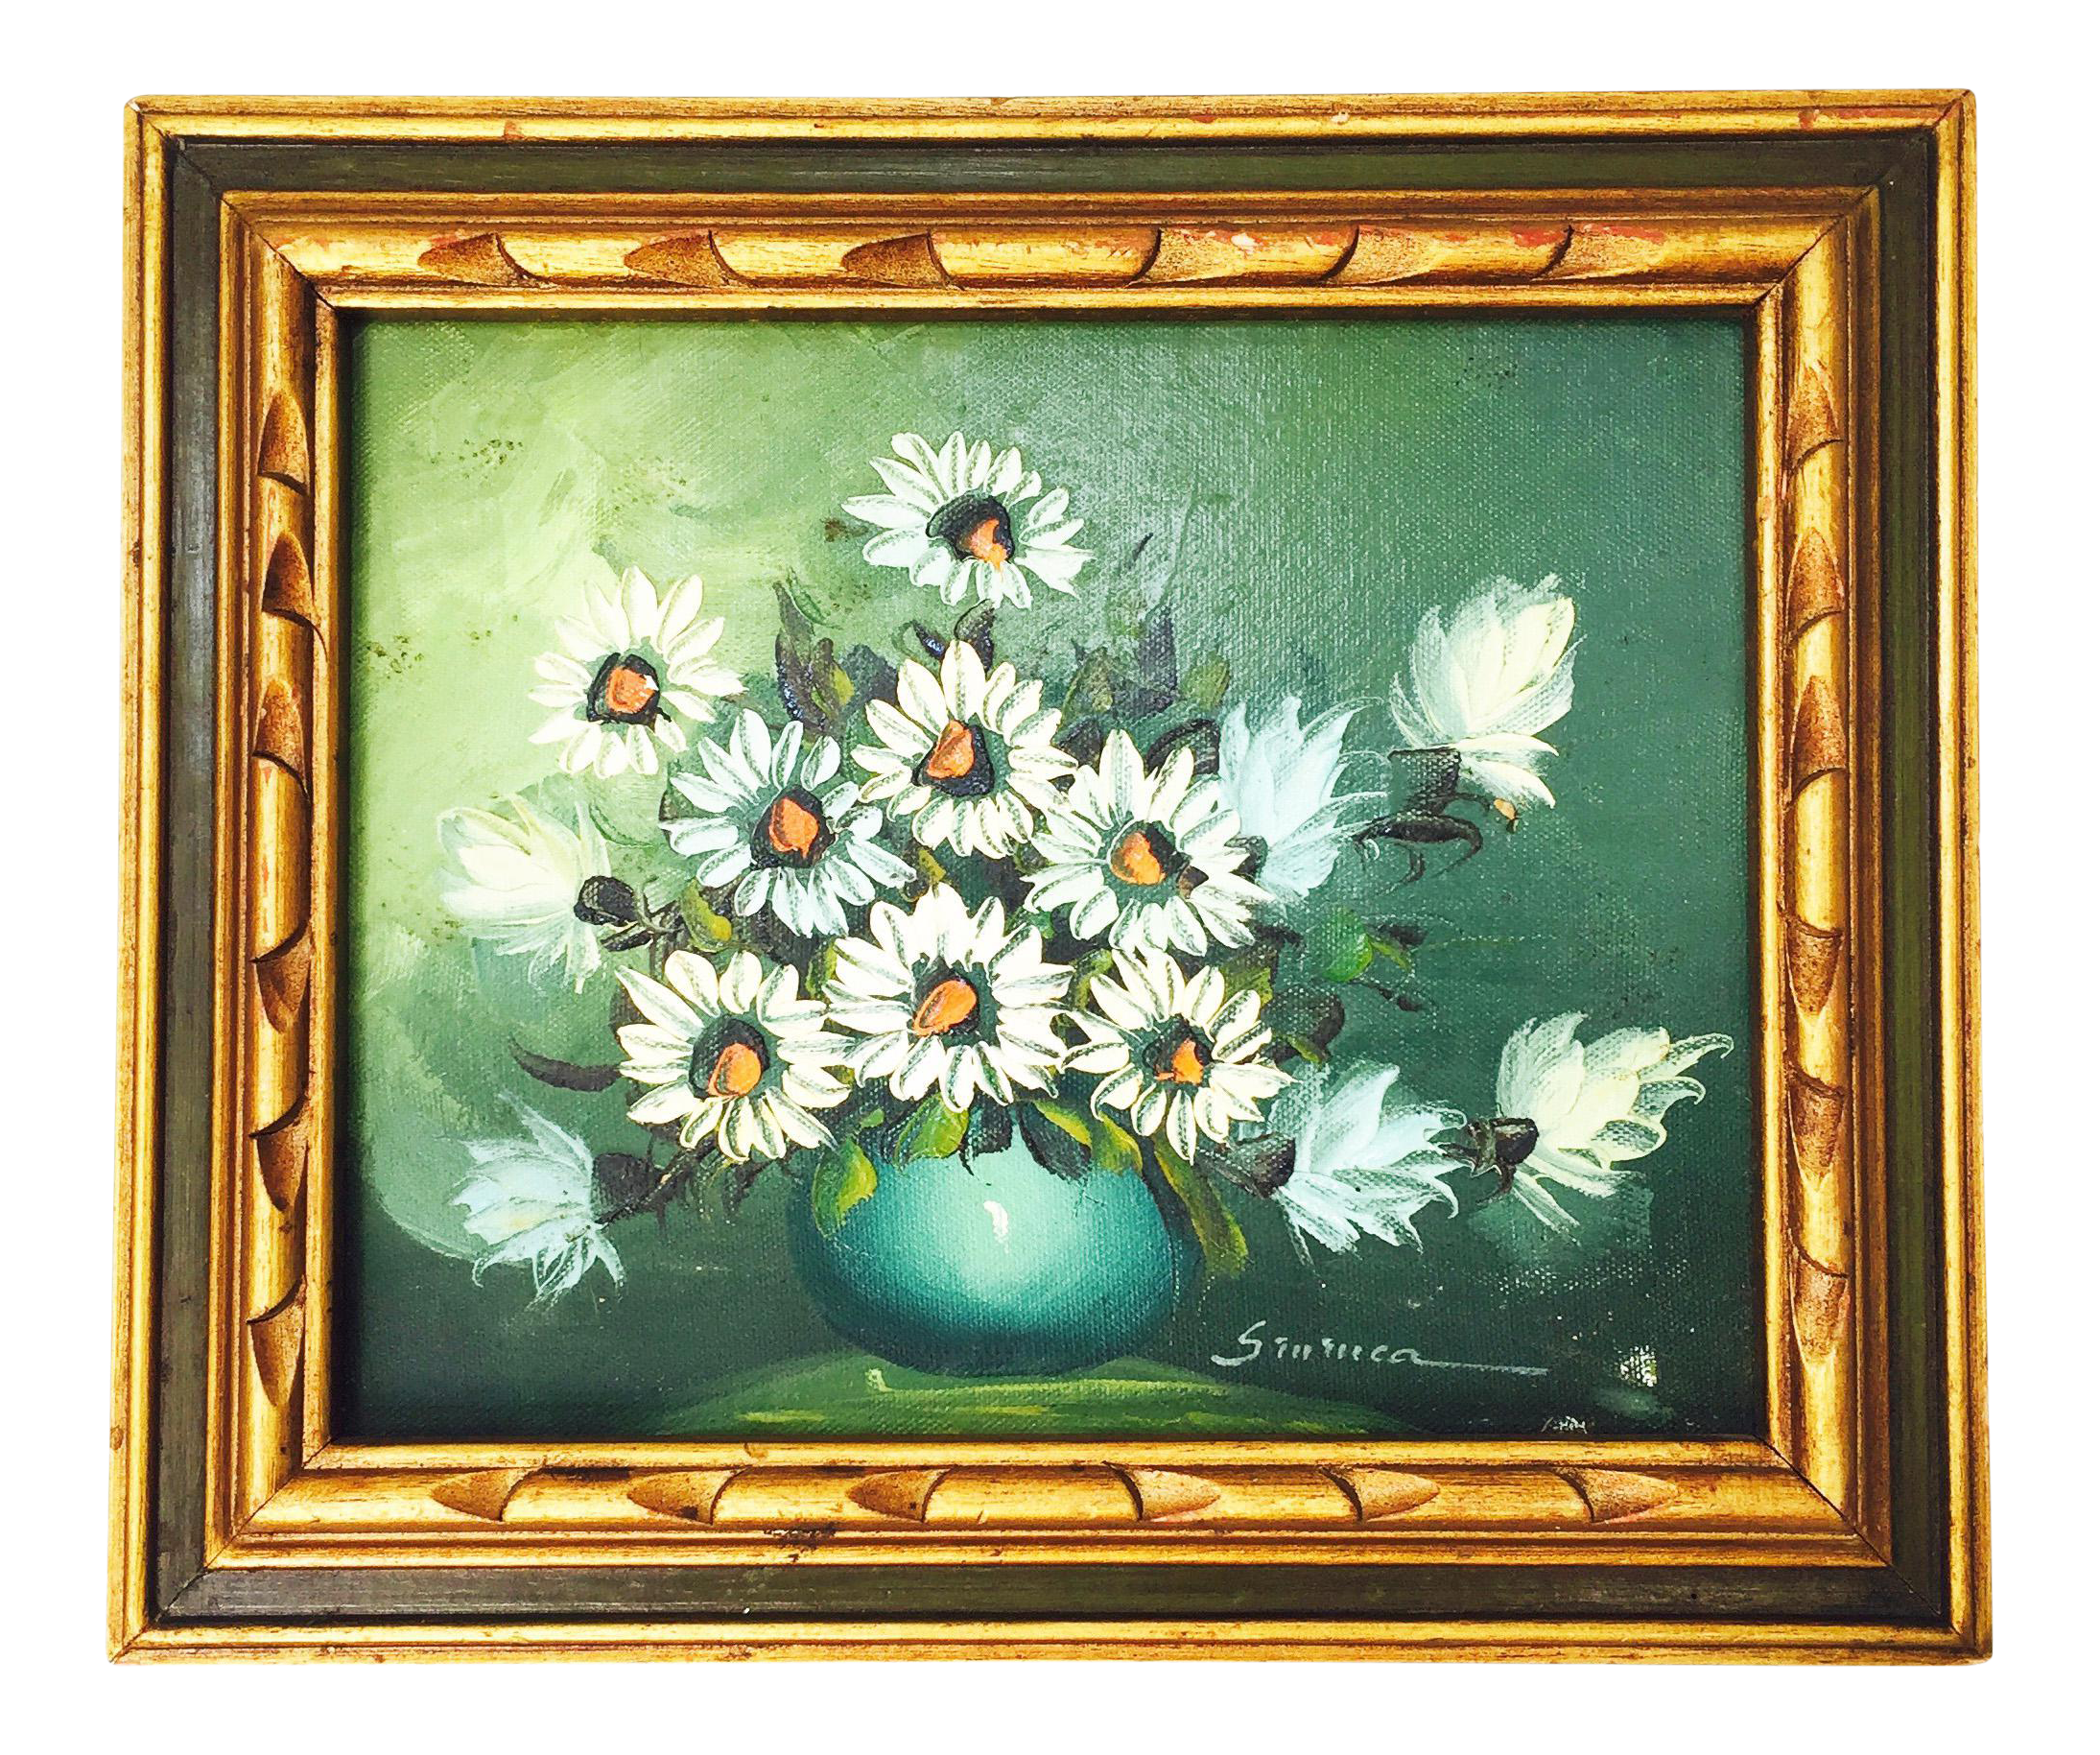 An original vintage oil painting of a sweet floral arrangement in a hand carved wood frame. Lovely colors and brushstrokes.